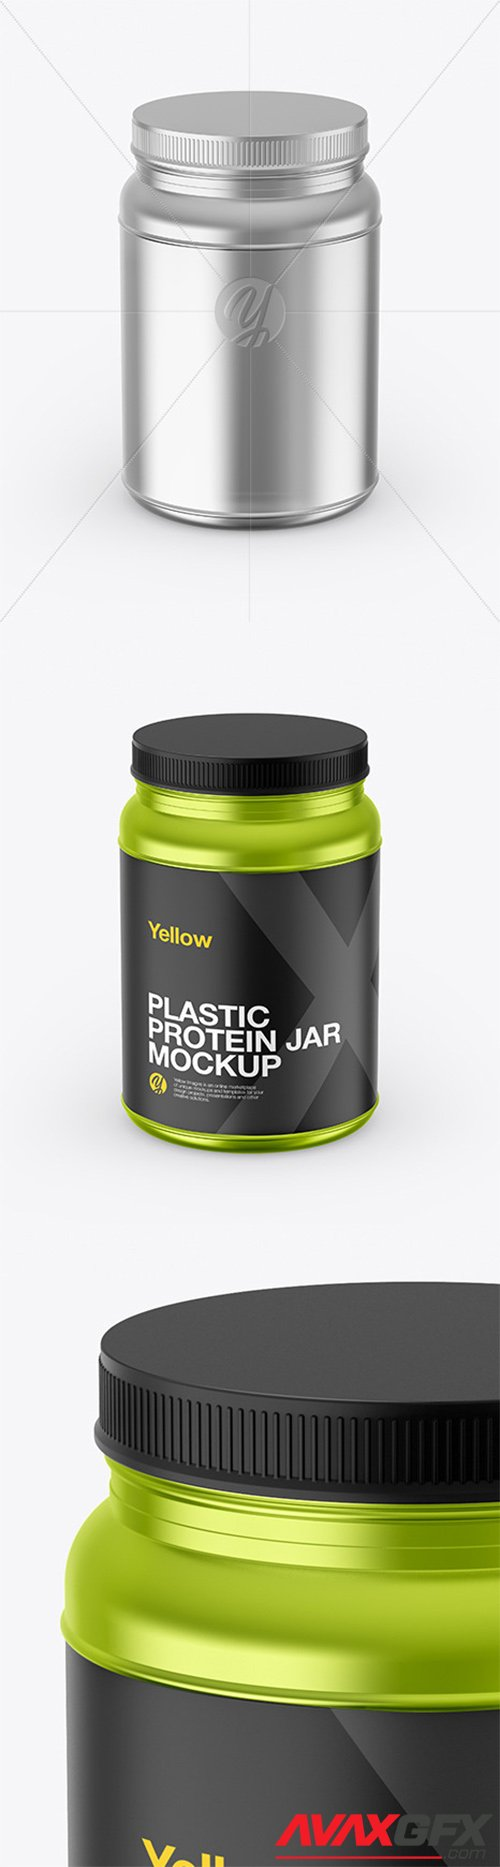 Metallized Protein Jar Mockup 65433